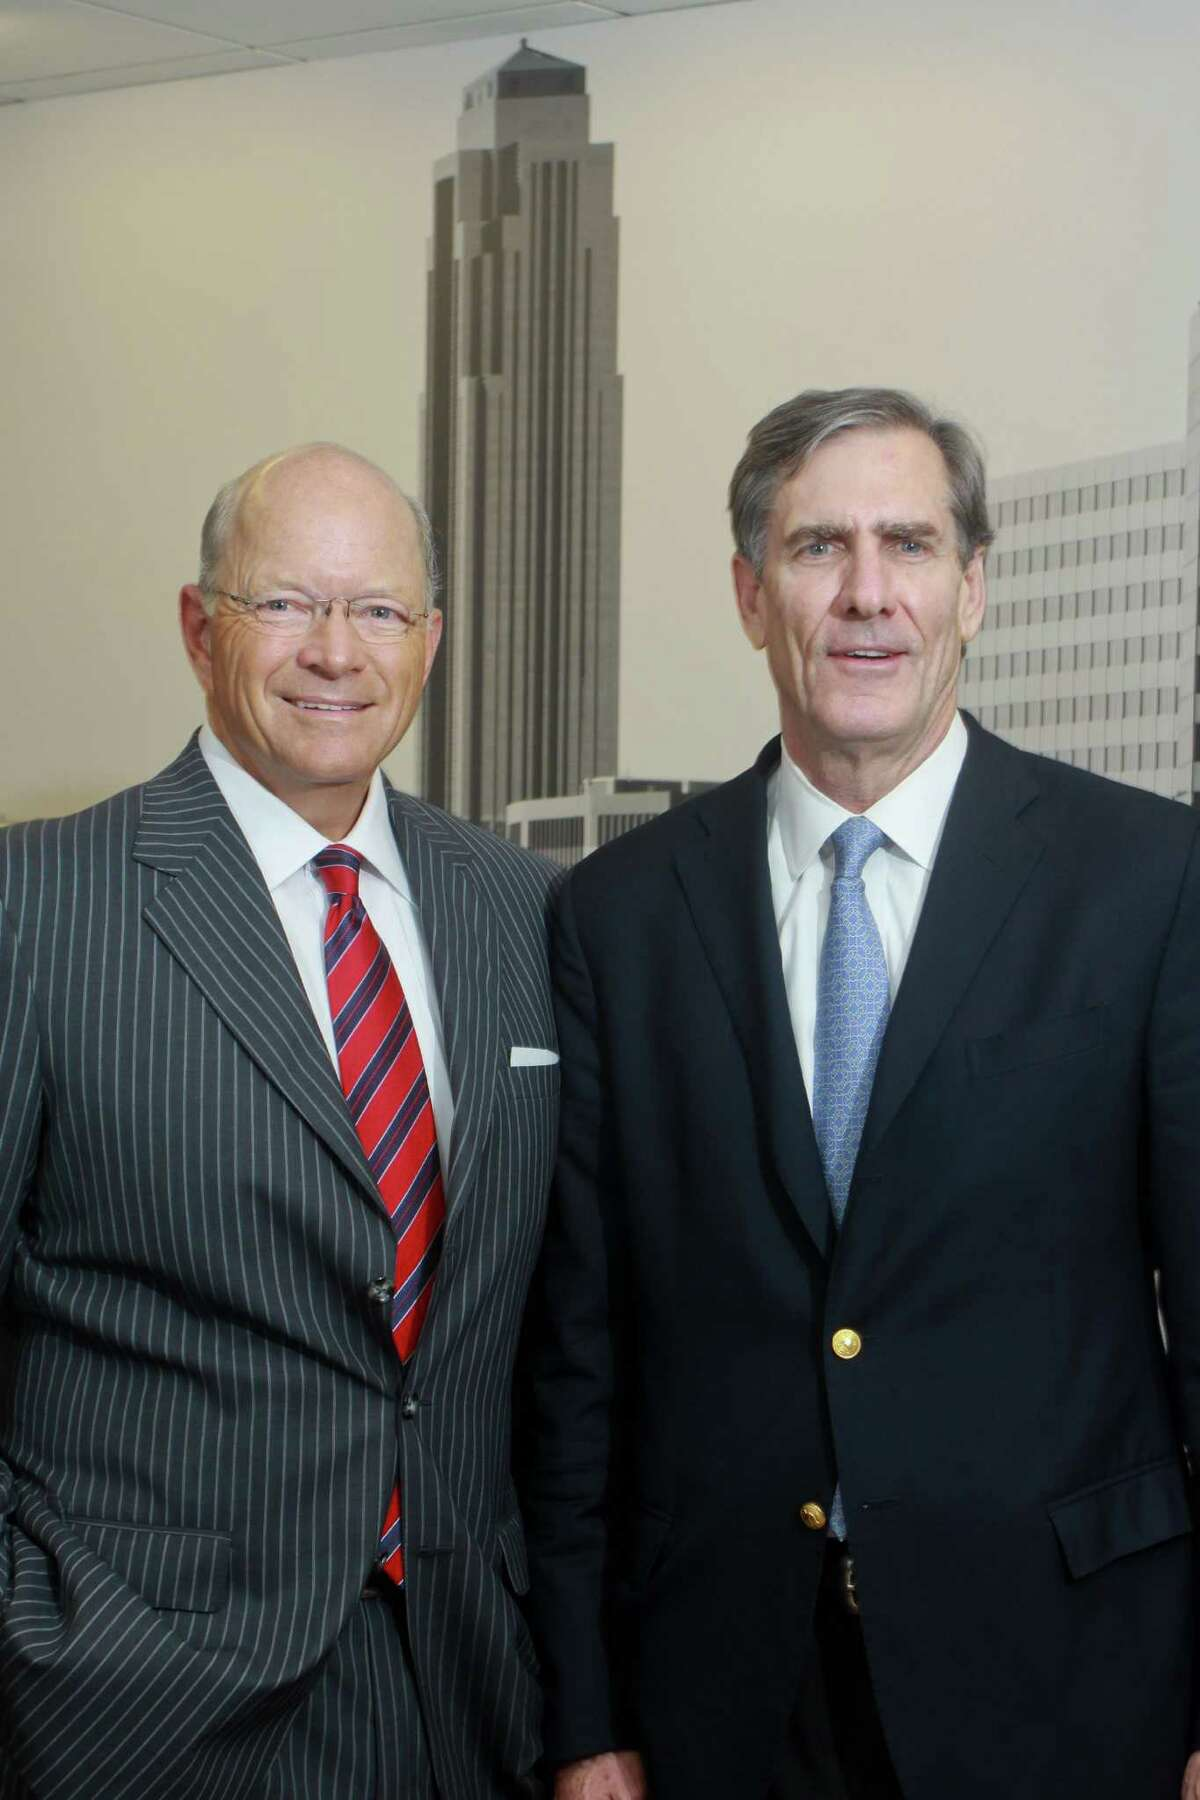 (For the Chronicle/Gary Fountain, August 26, 2013) Dan Bellow, president of Jones Lang LaSalle in Houston, left, and Doug Knaus, in front of a mural of the Houston skyline in the Jones Lang LaSalle office.Jones Lang LaSalle announced today that it has acquired Means Knaus Partners, a Houston-based property management company founded in 1998 by Steve Means and Doug Knaus.